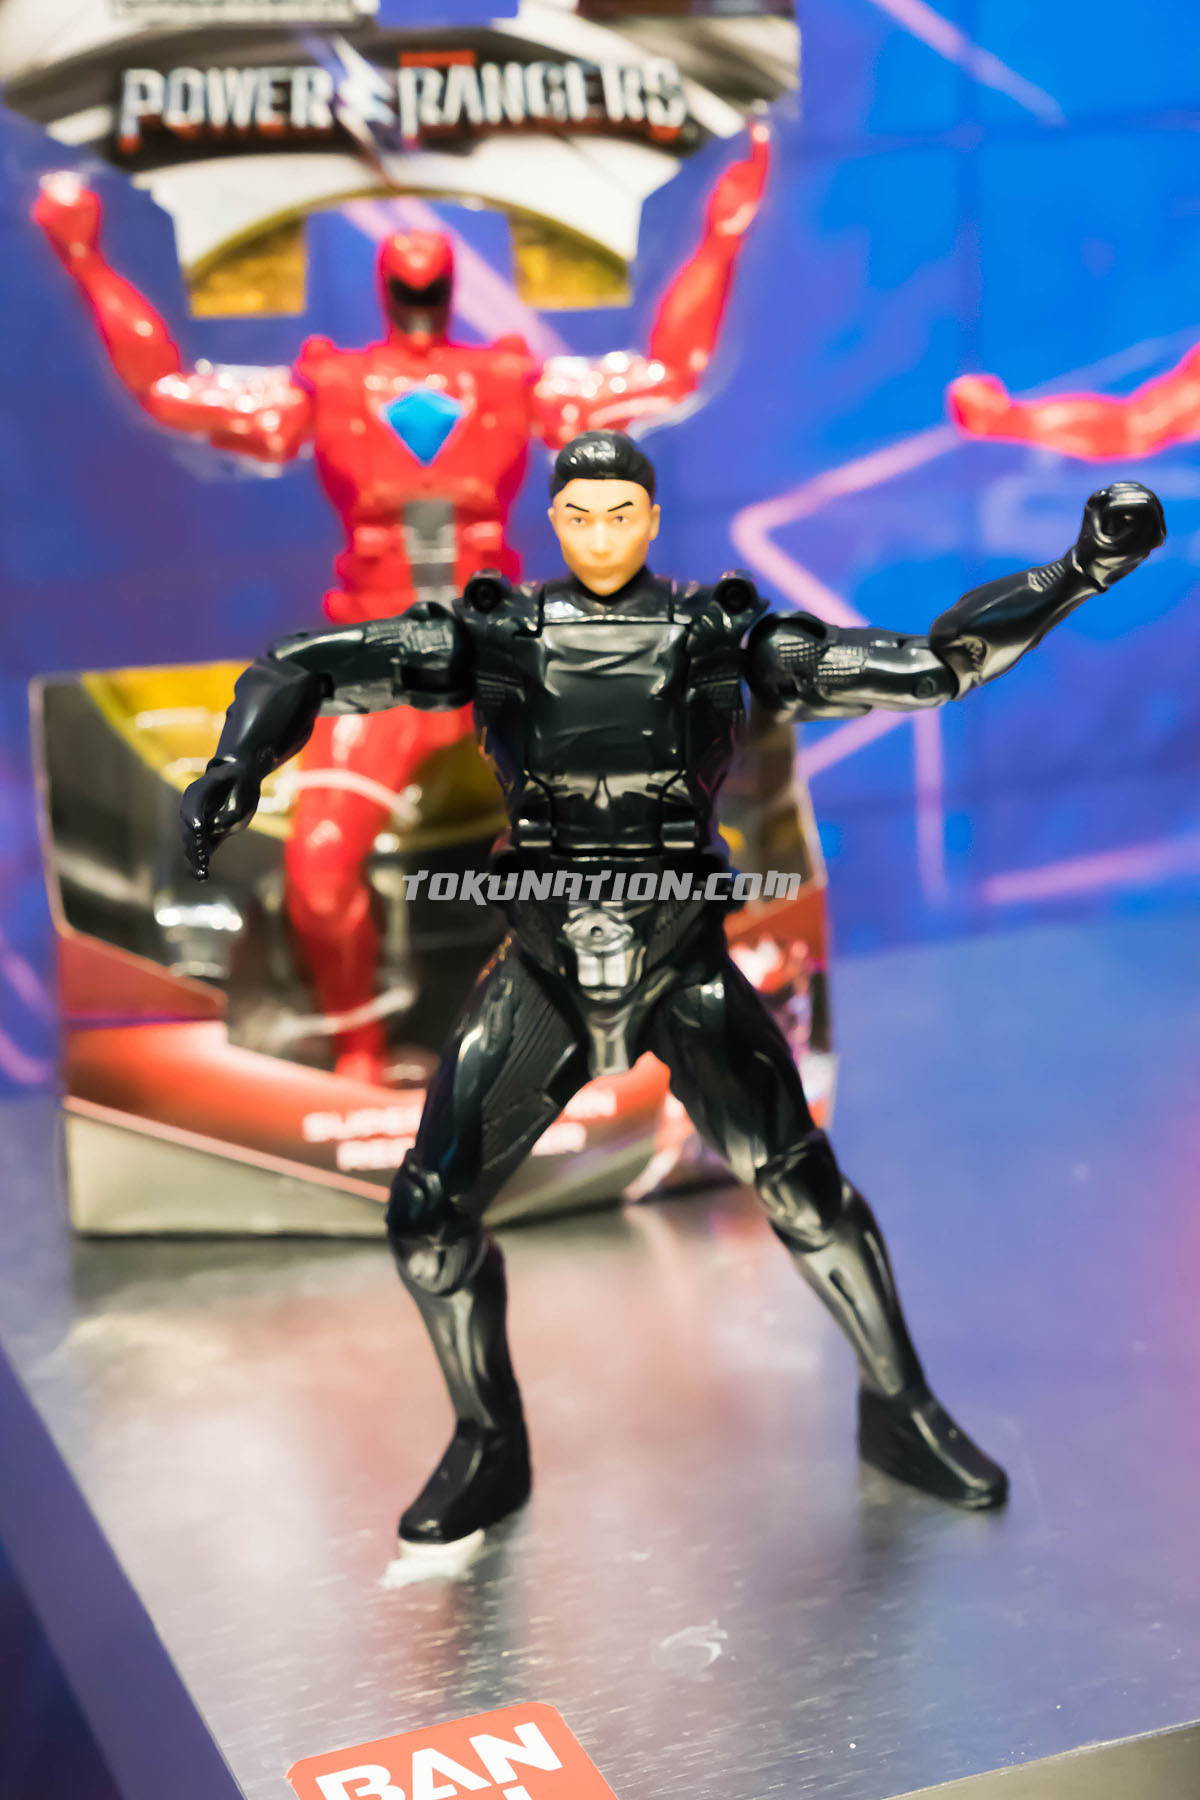 Best Power Ranger Toys And Action Figures : Toy fair power rangers movie figures and